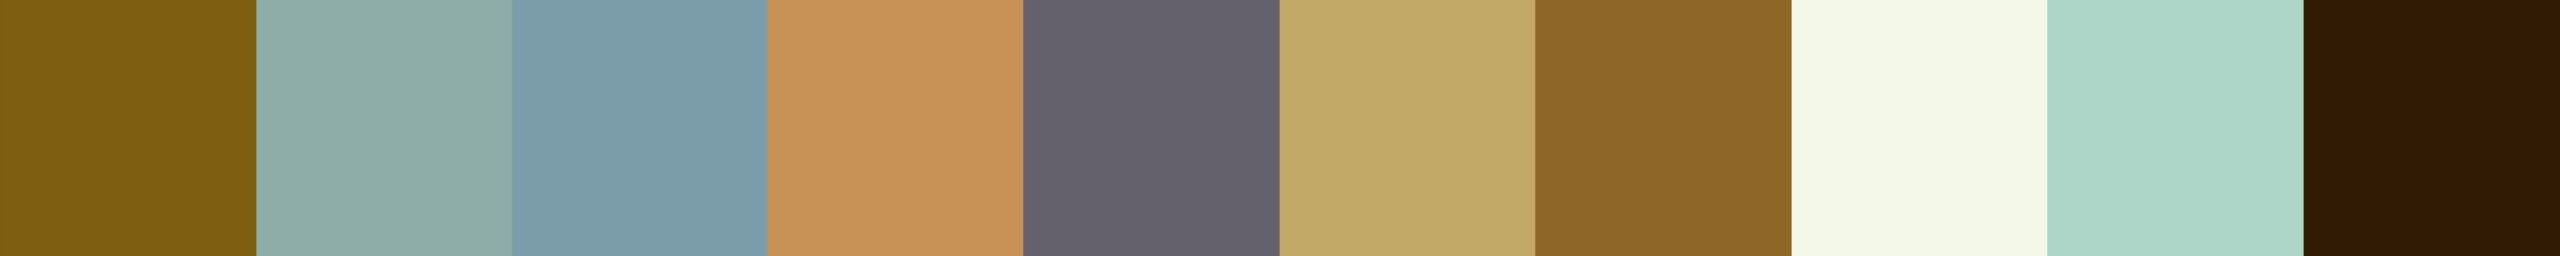 737 Chigreda Color Palette